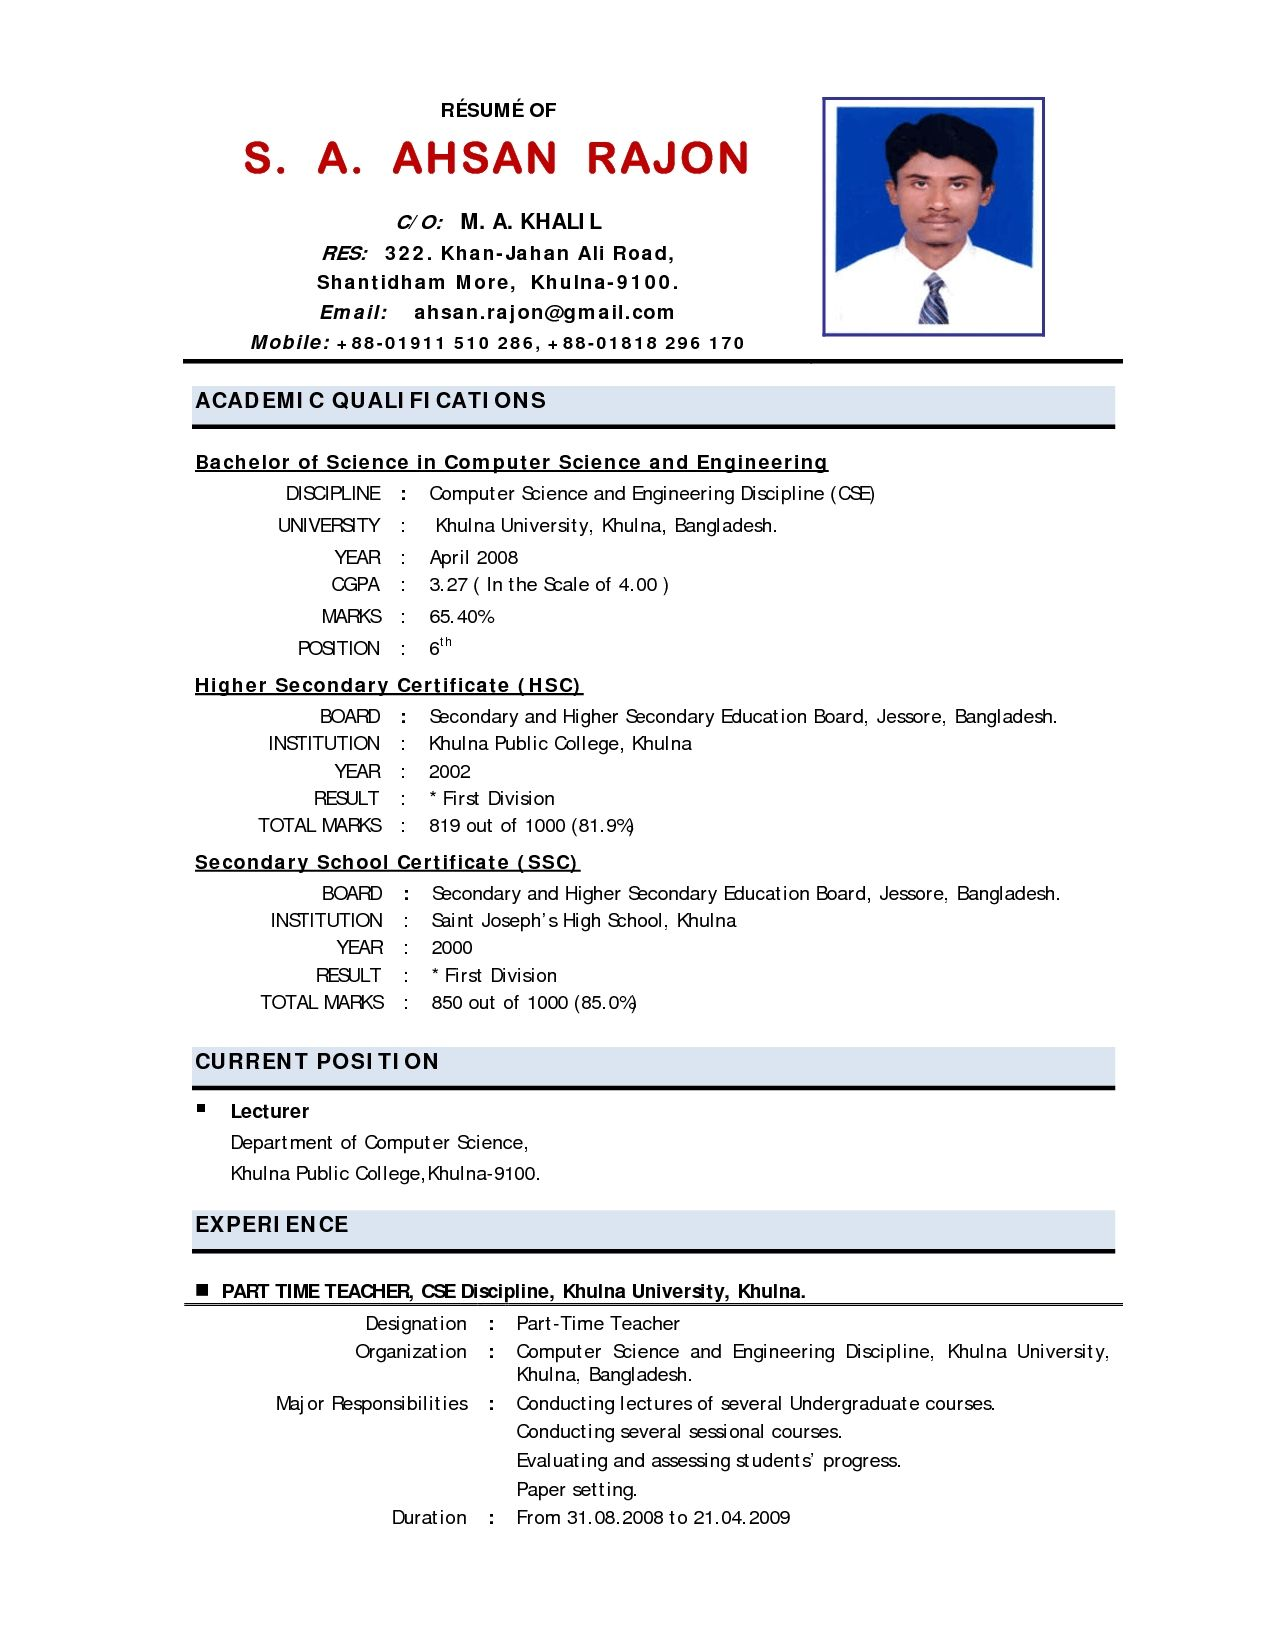 How To Download Resume From Naukri Free Resume Templates Work Example Social Sample Template